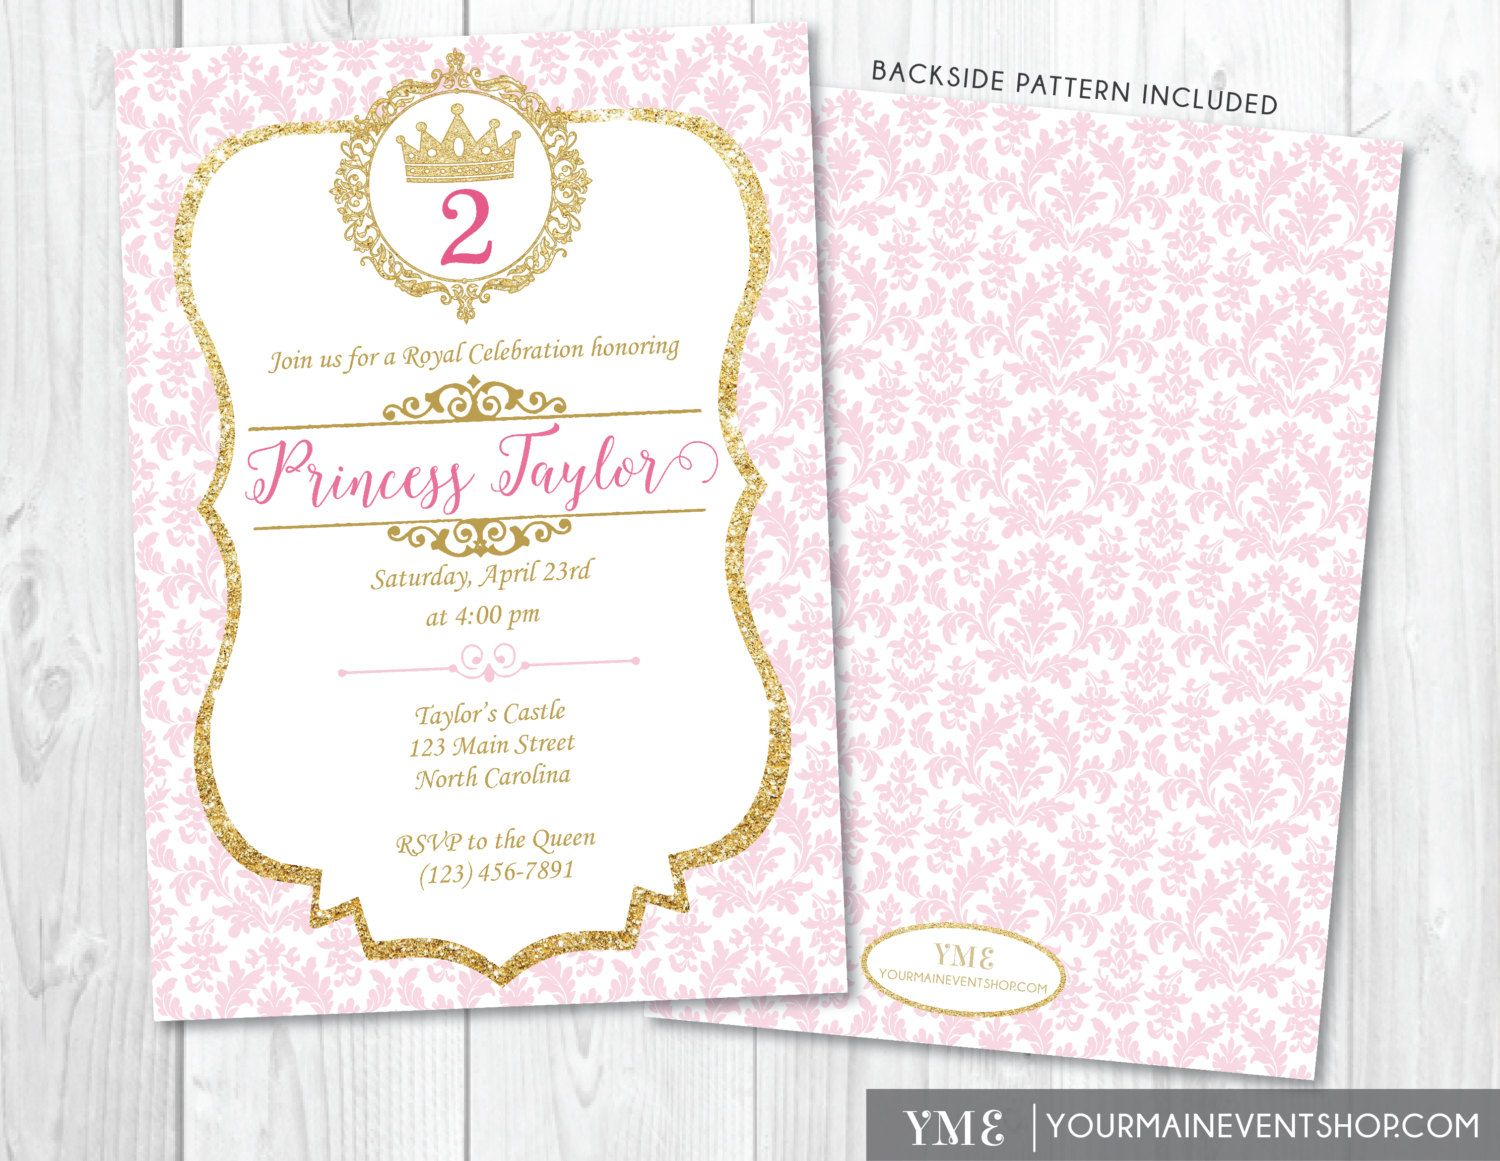 Princess birthday invitation pink and gold princess invite princess birthday invitation pink and gold by yourmaineventprints stopboris Image collections